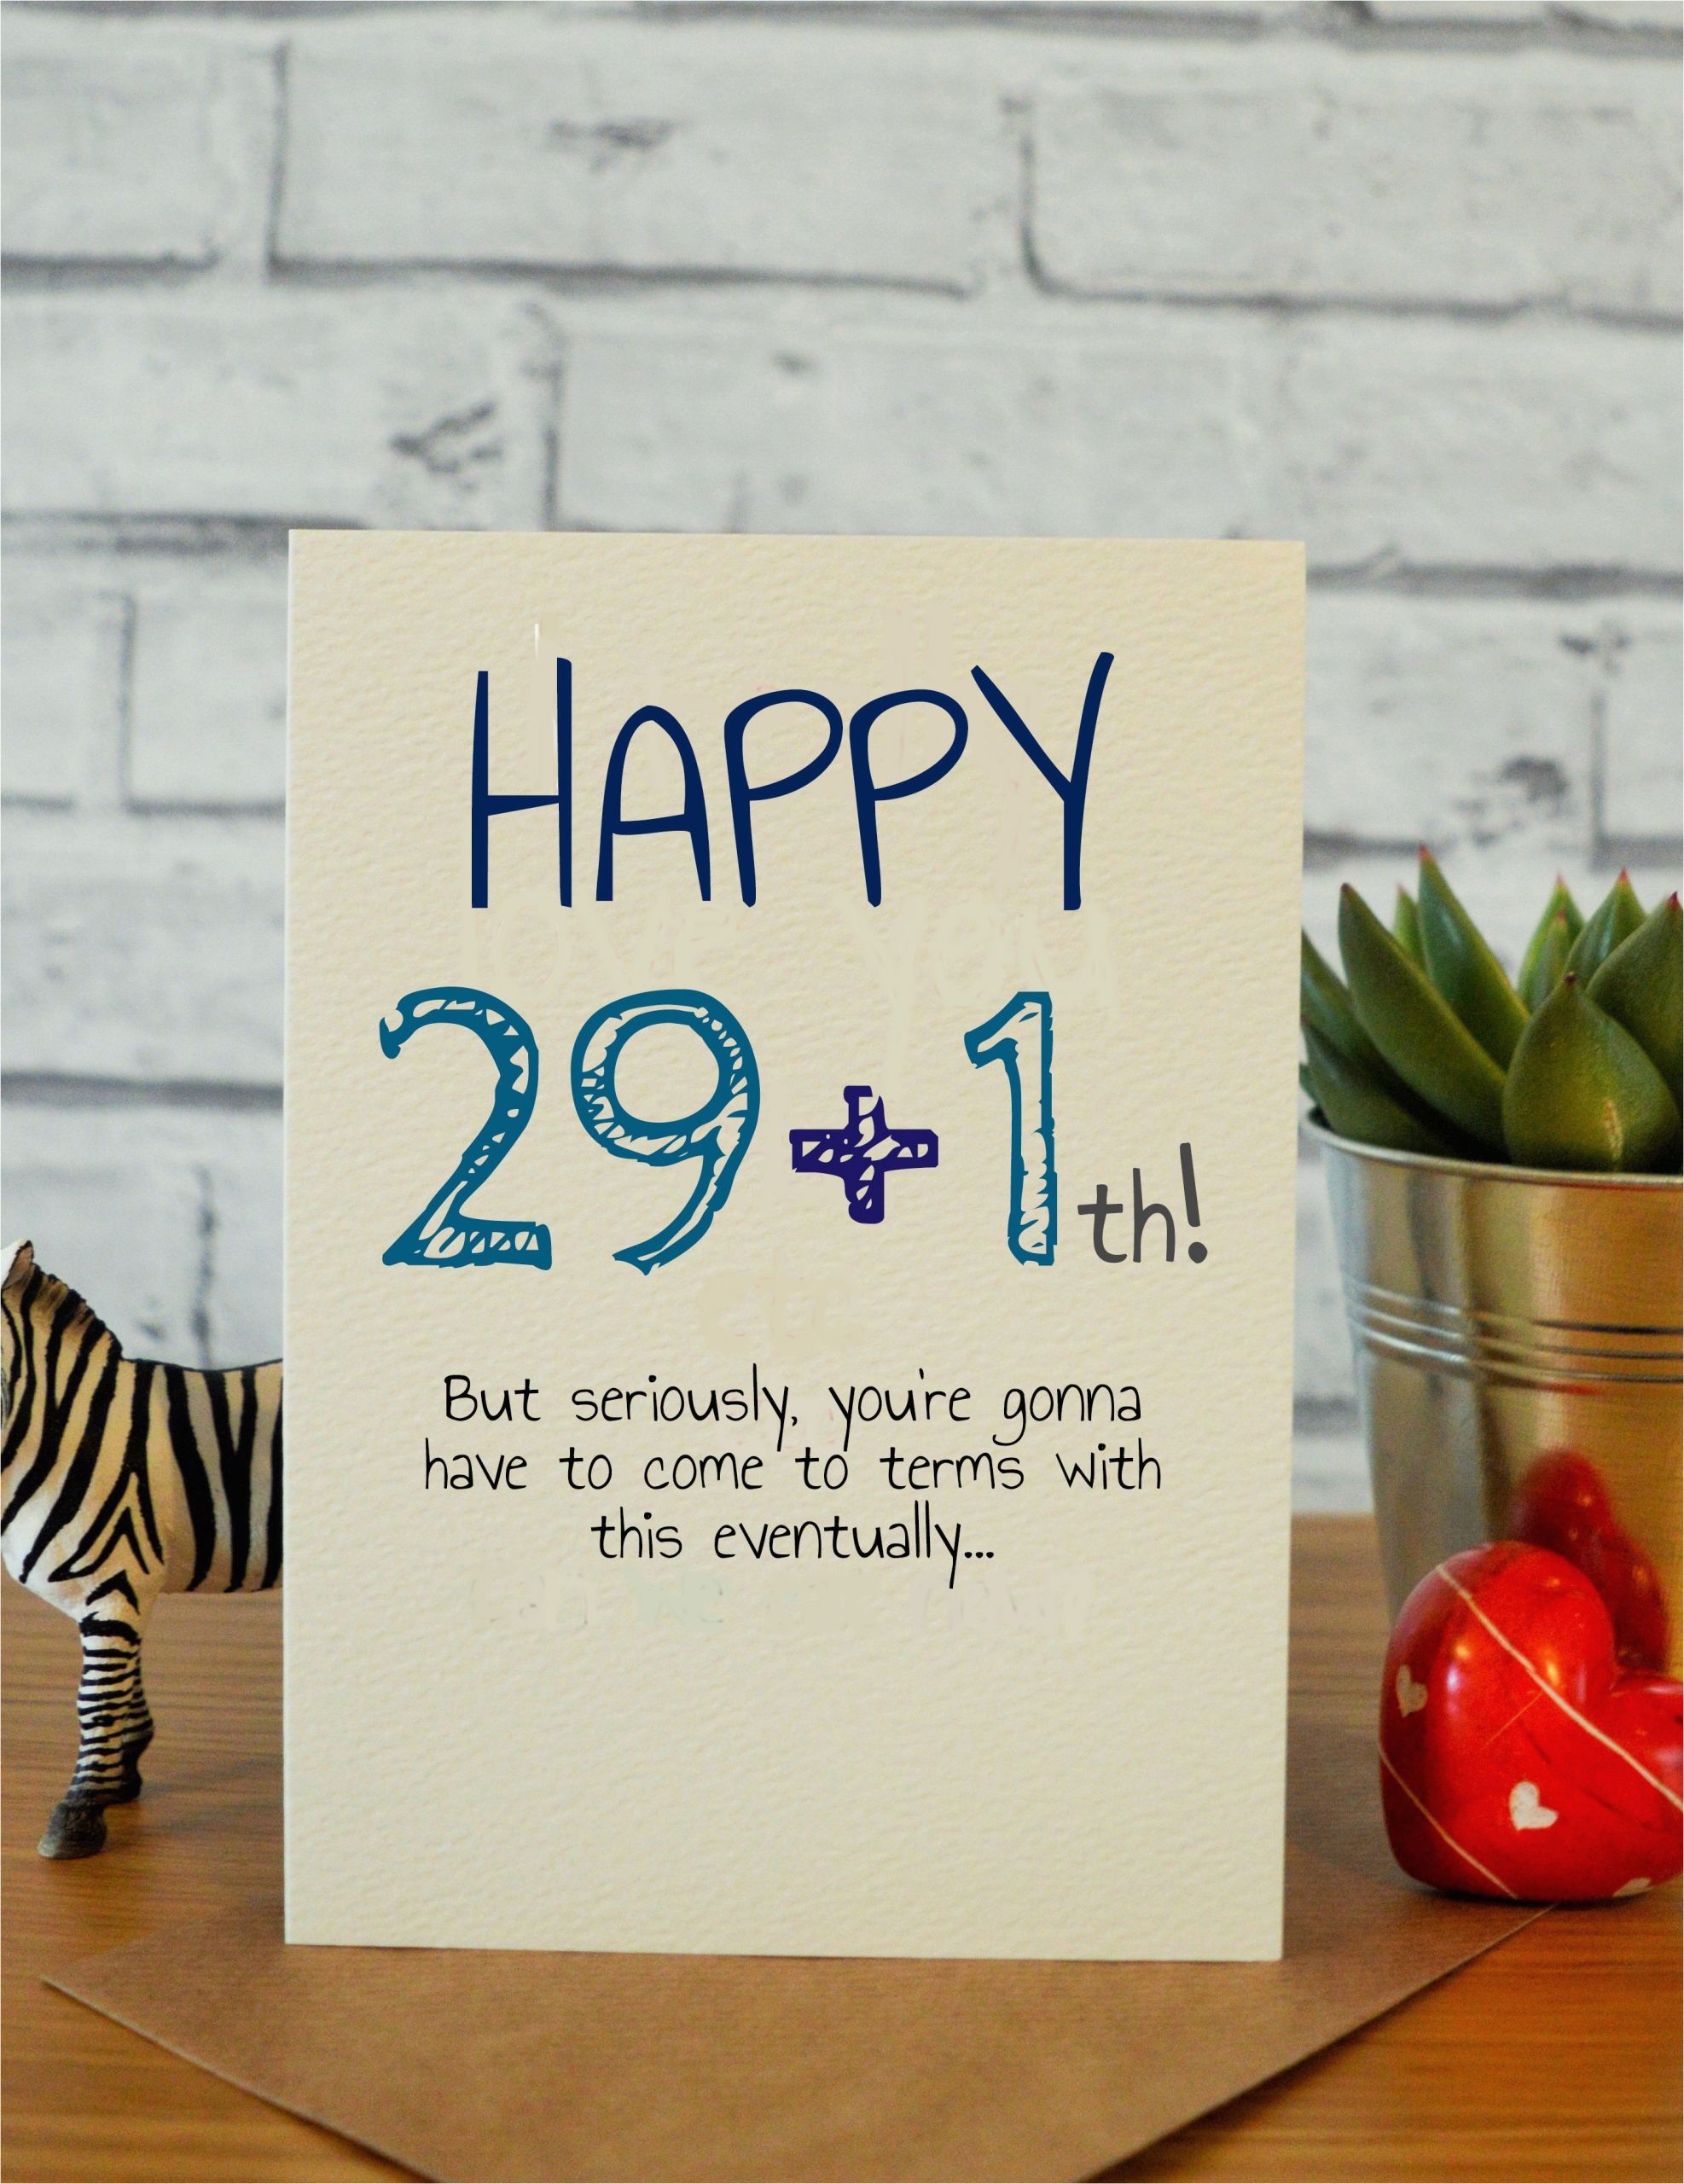 Funny 60 Birthday Gifts for Him 29 1th Hand Made Gifts Birthday Cards for Him